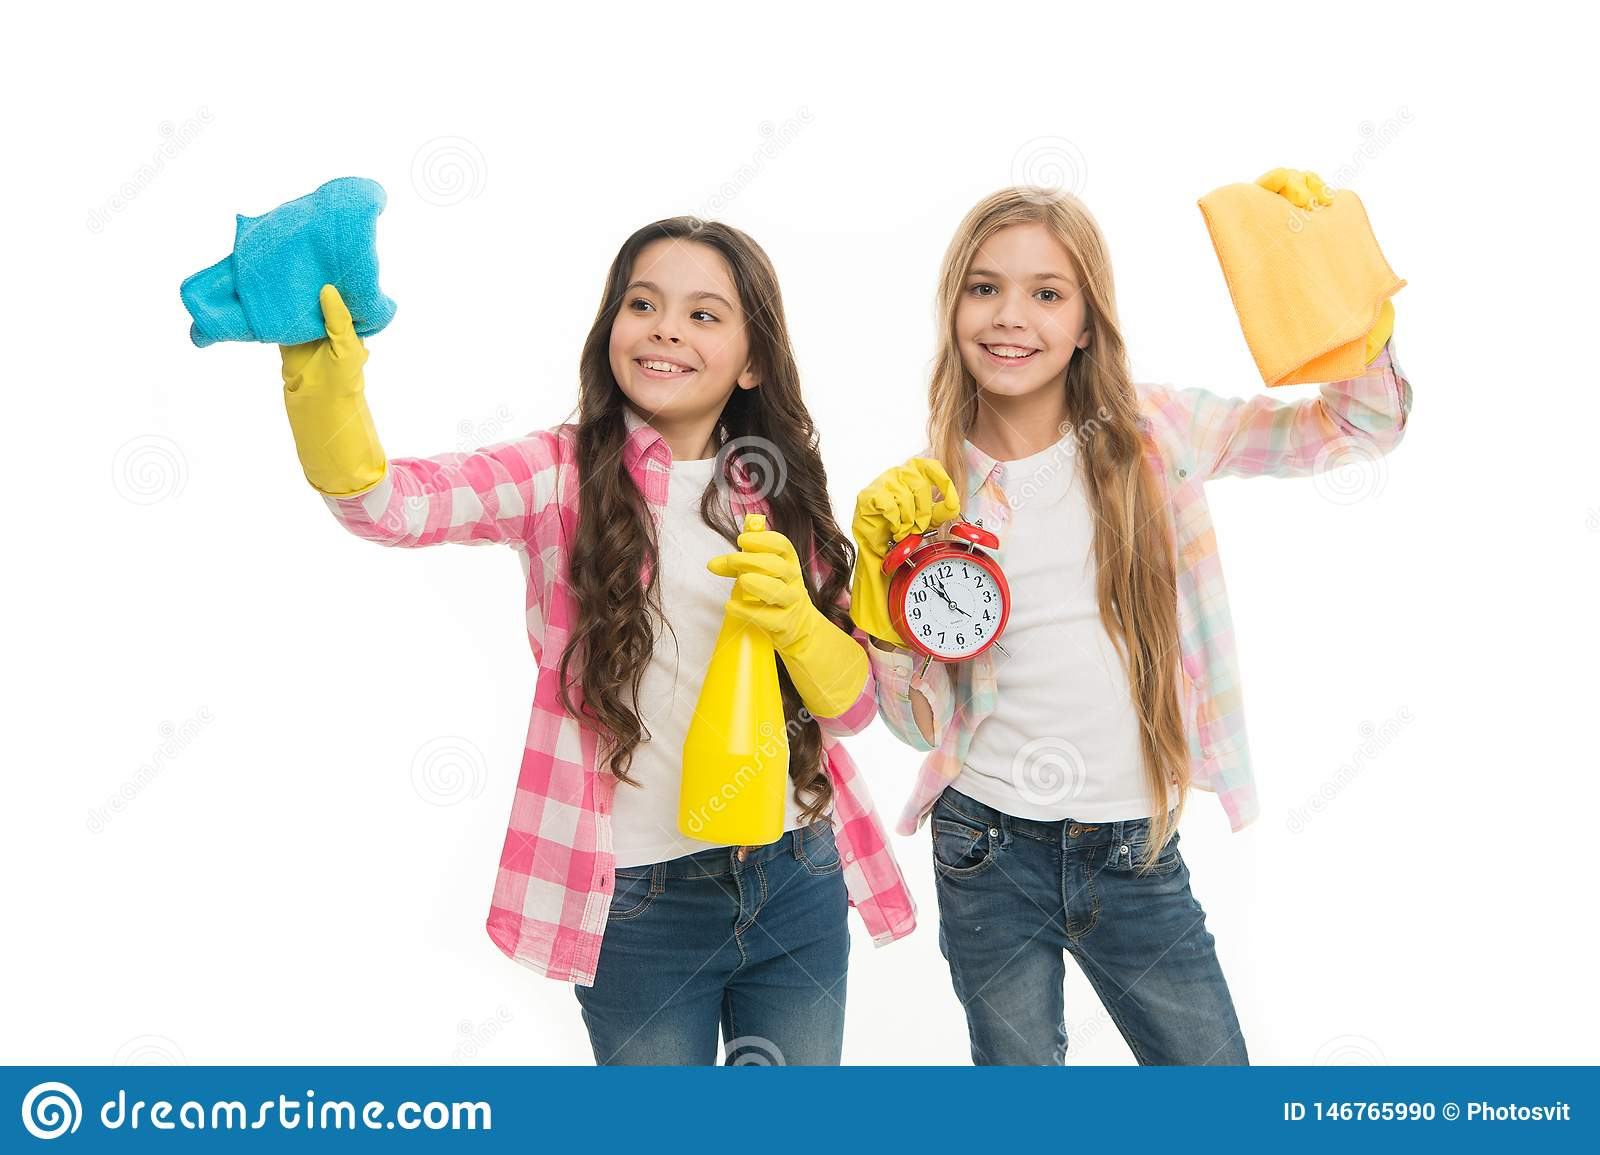 Household duties. Girls with rubber protective gloves ready for cleaning. Informal education. Girls kids cleaning